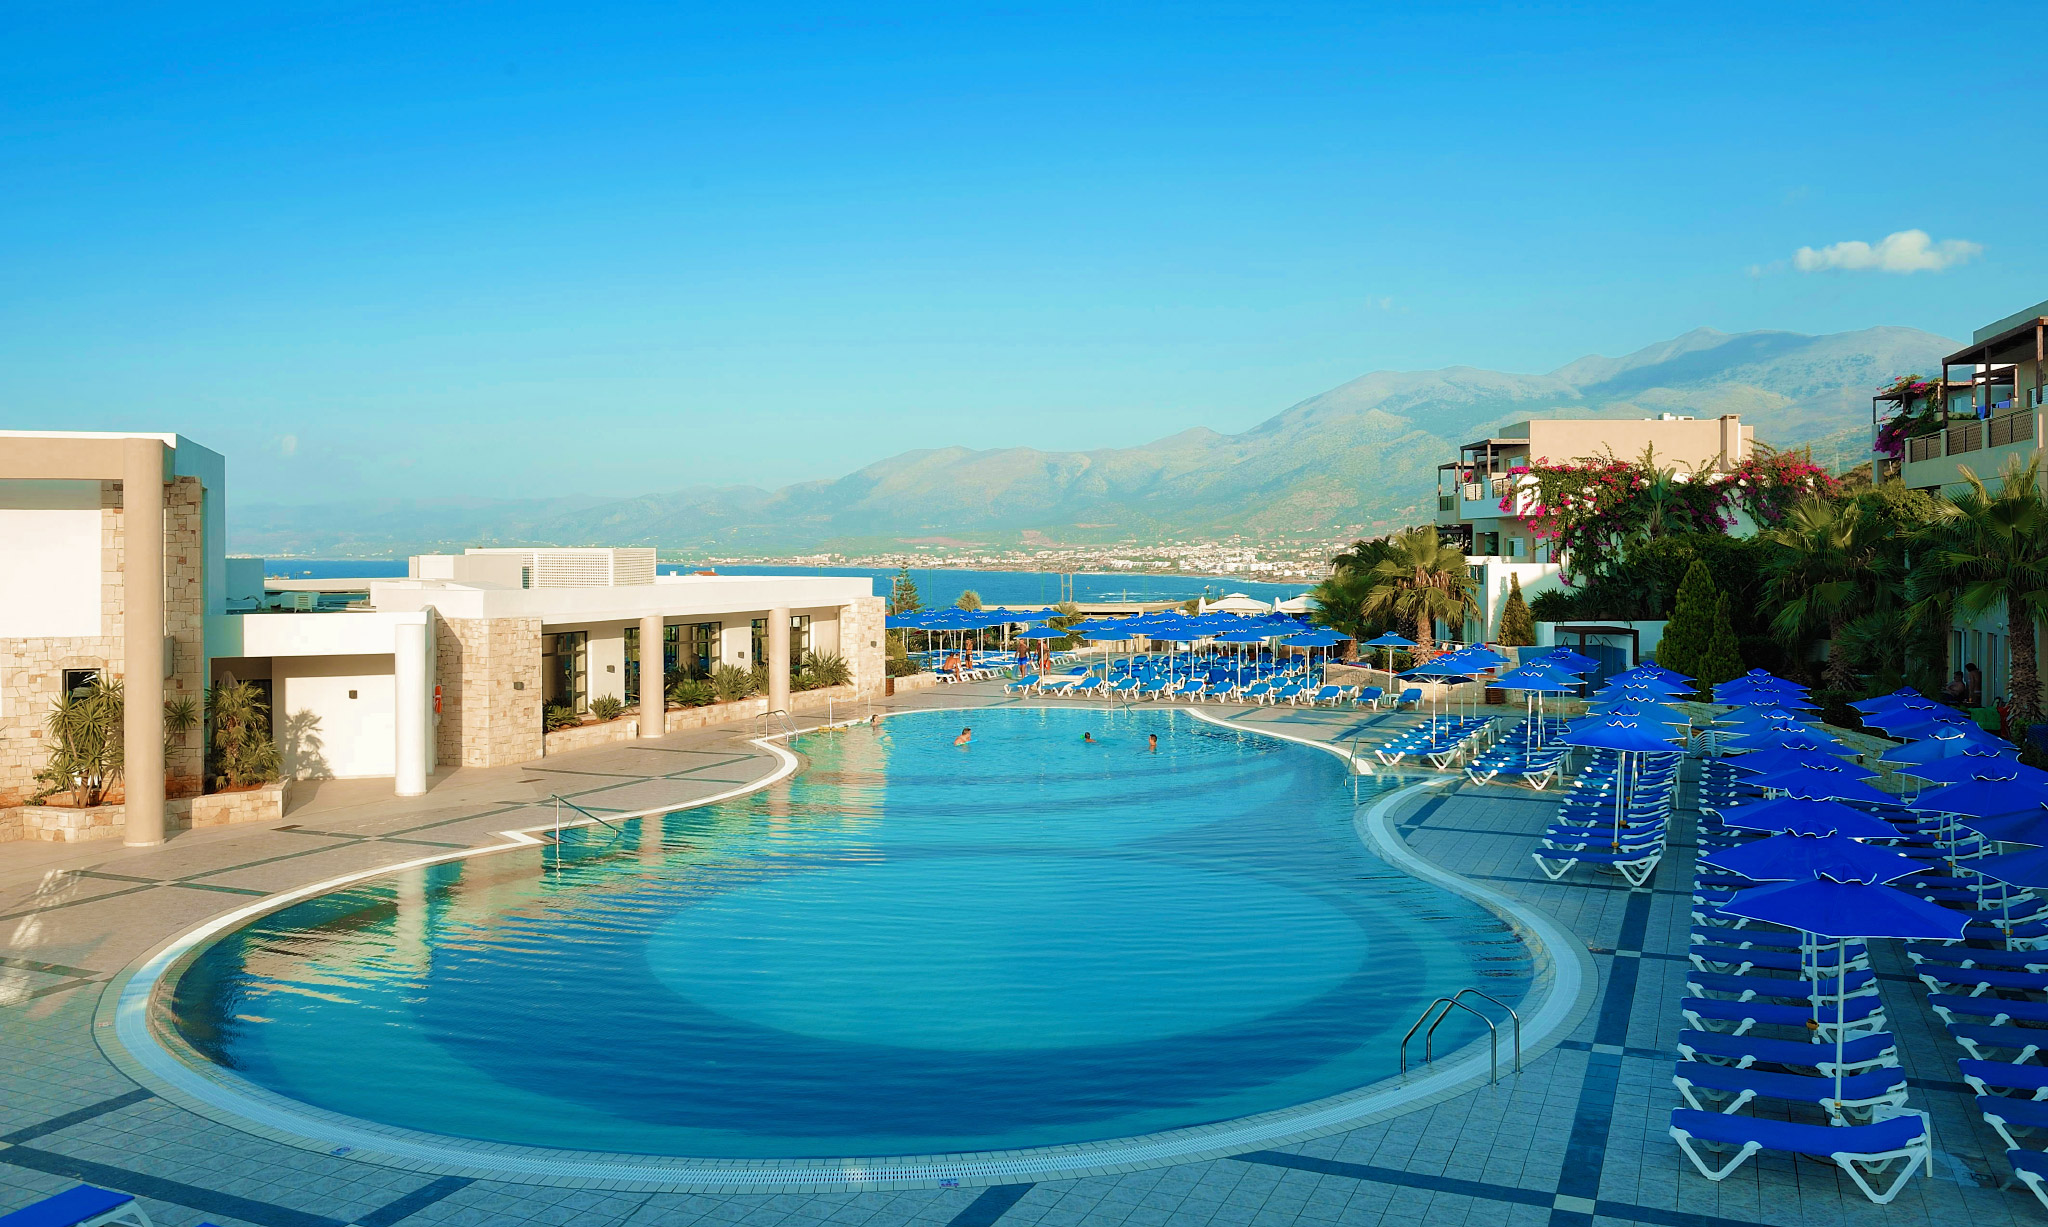 Oferta Creta Grand Holiday Resort 4 stele